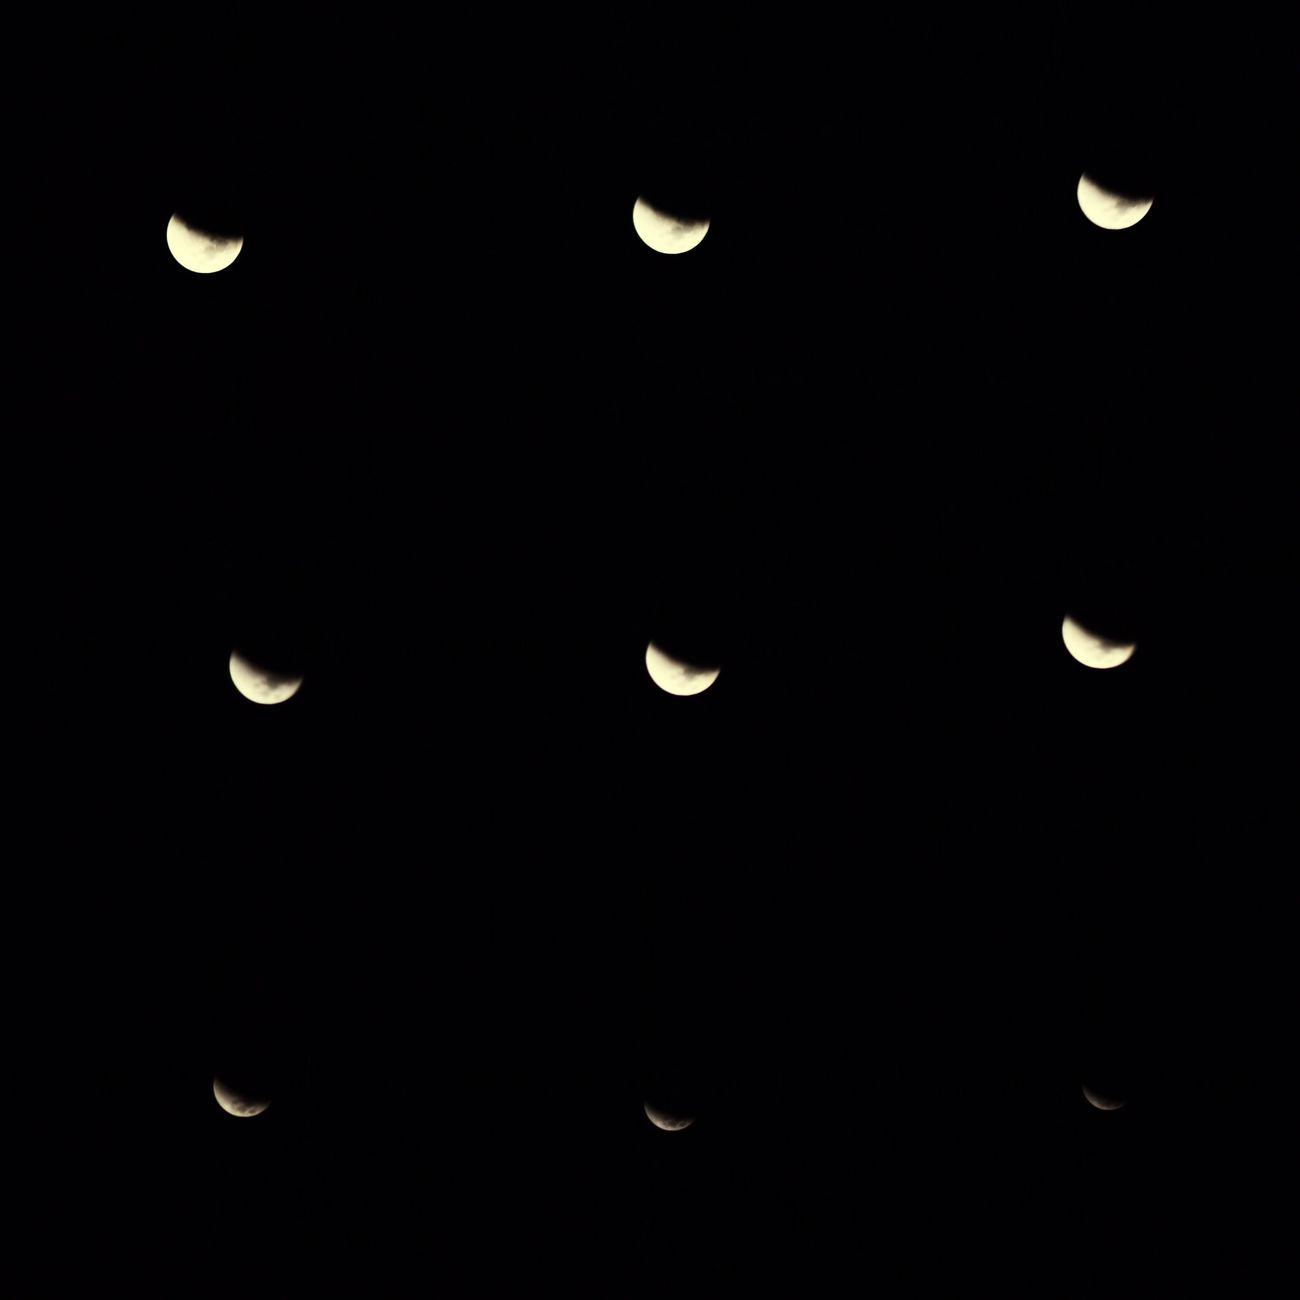 Moon Moonlight Full Moon Lunar Eclipse Moon Eclipse Bloody Moon Eclipse Photoghraphy